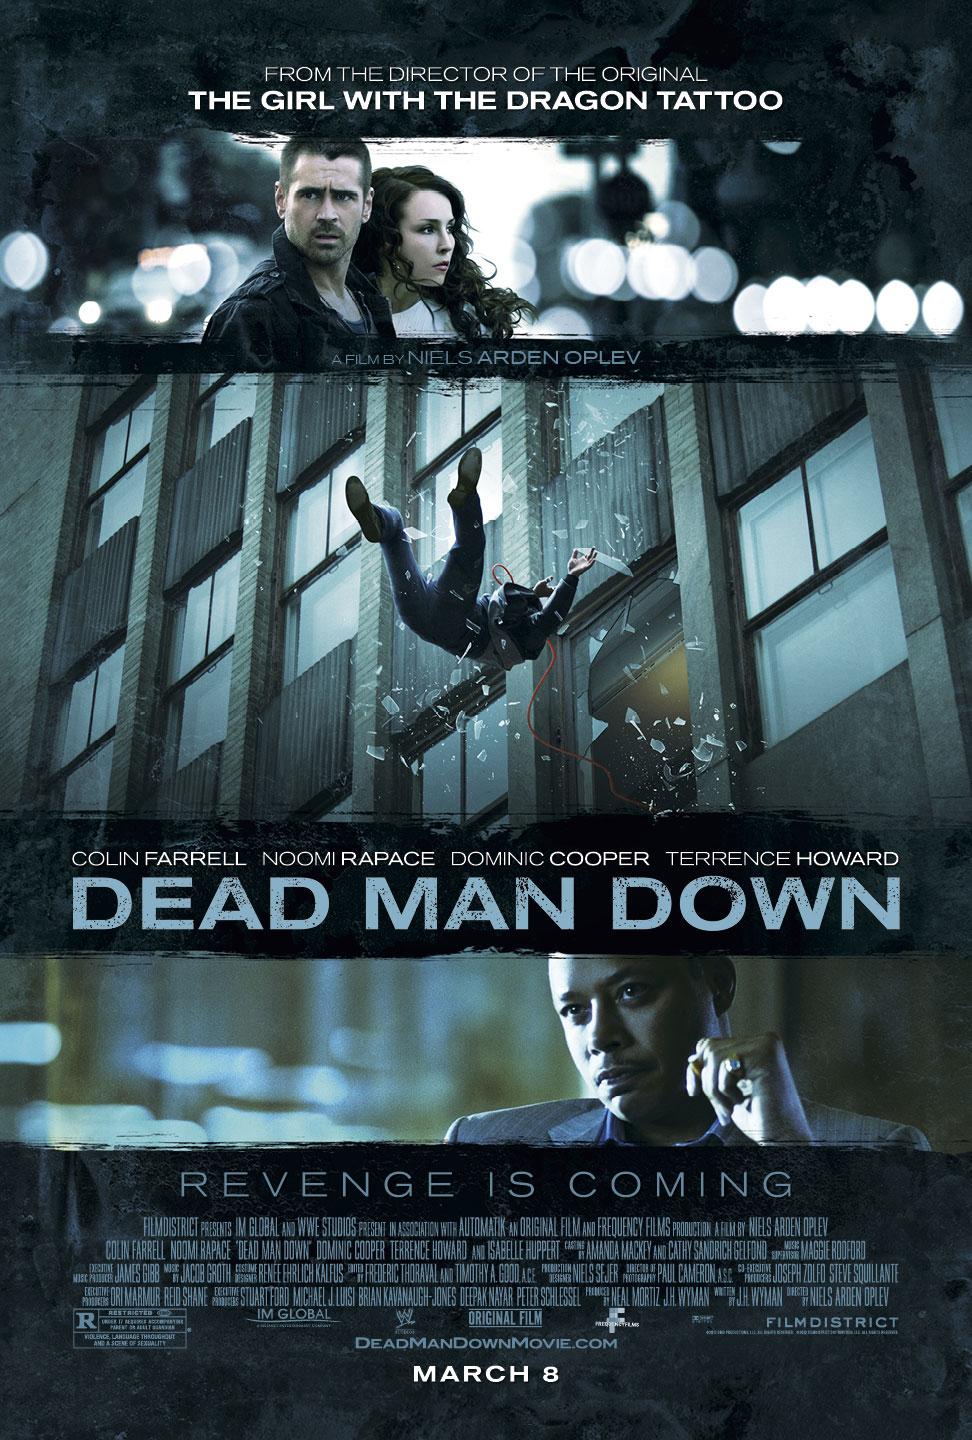 Dead Man Down Poster2 Get a Glimpse Into Dead Man Down in New Featurette